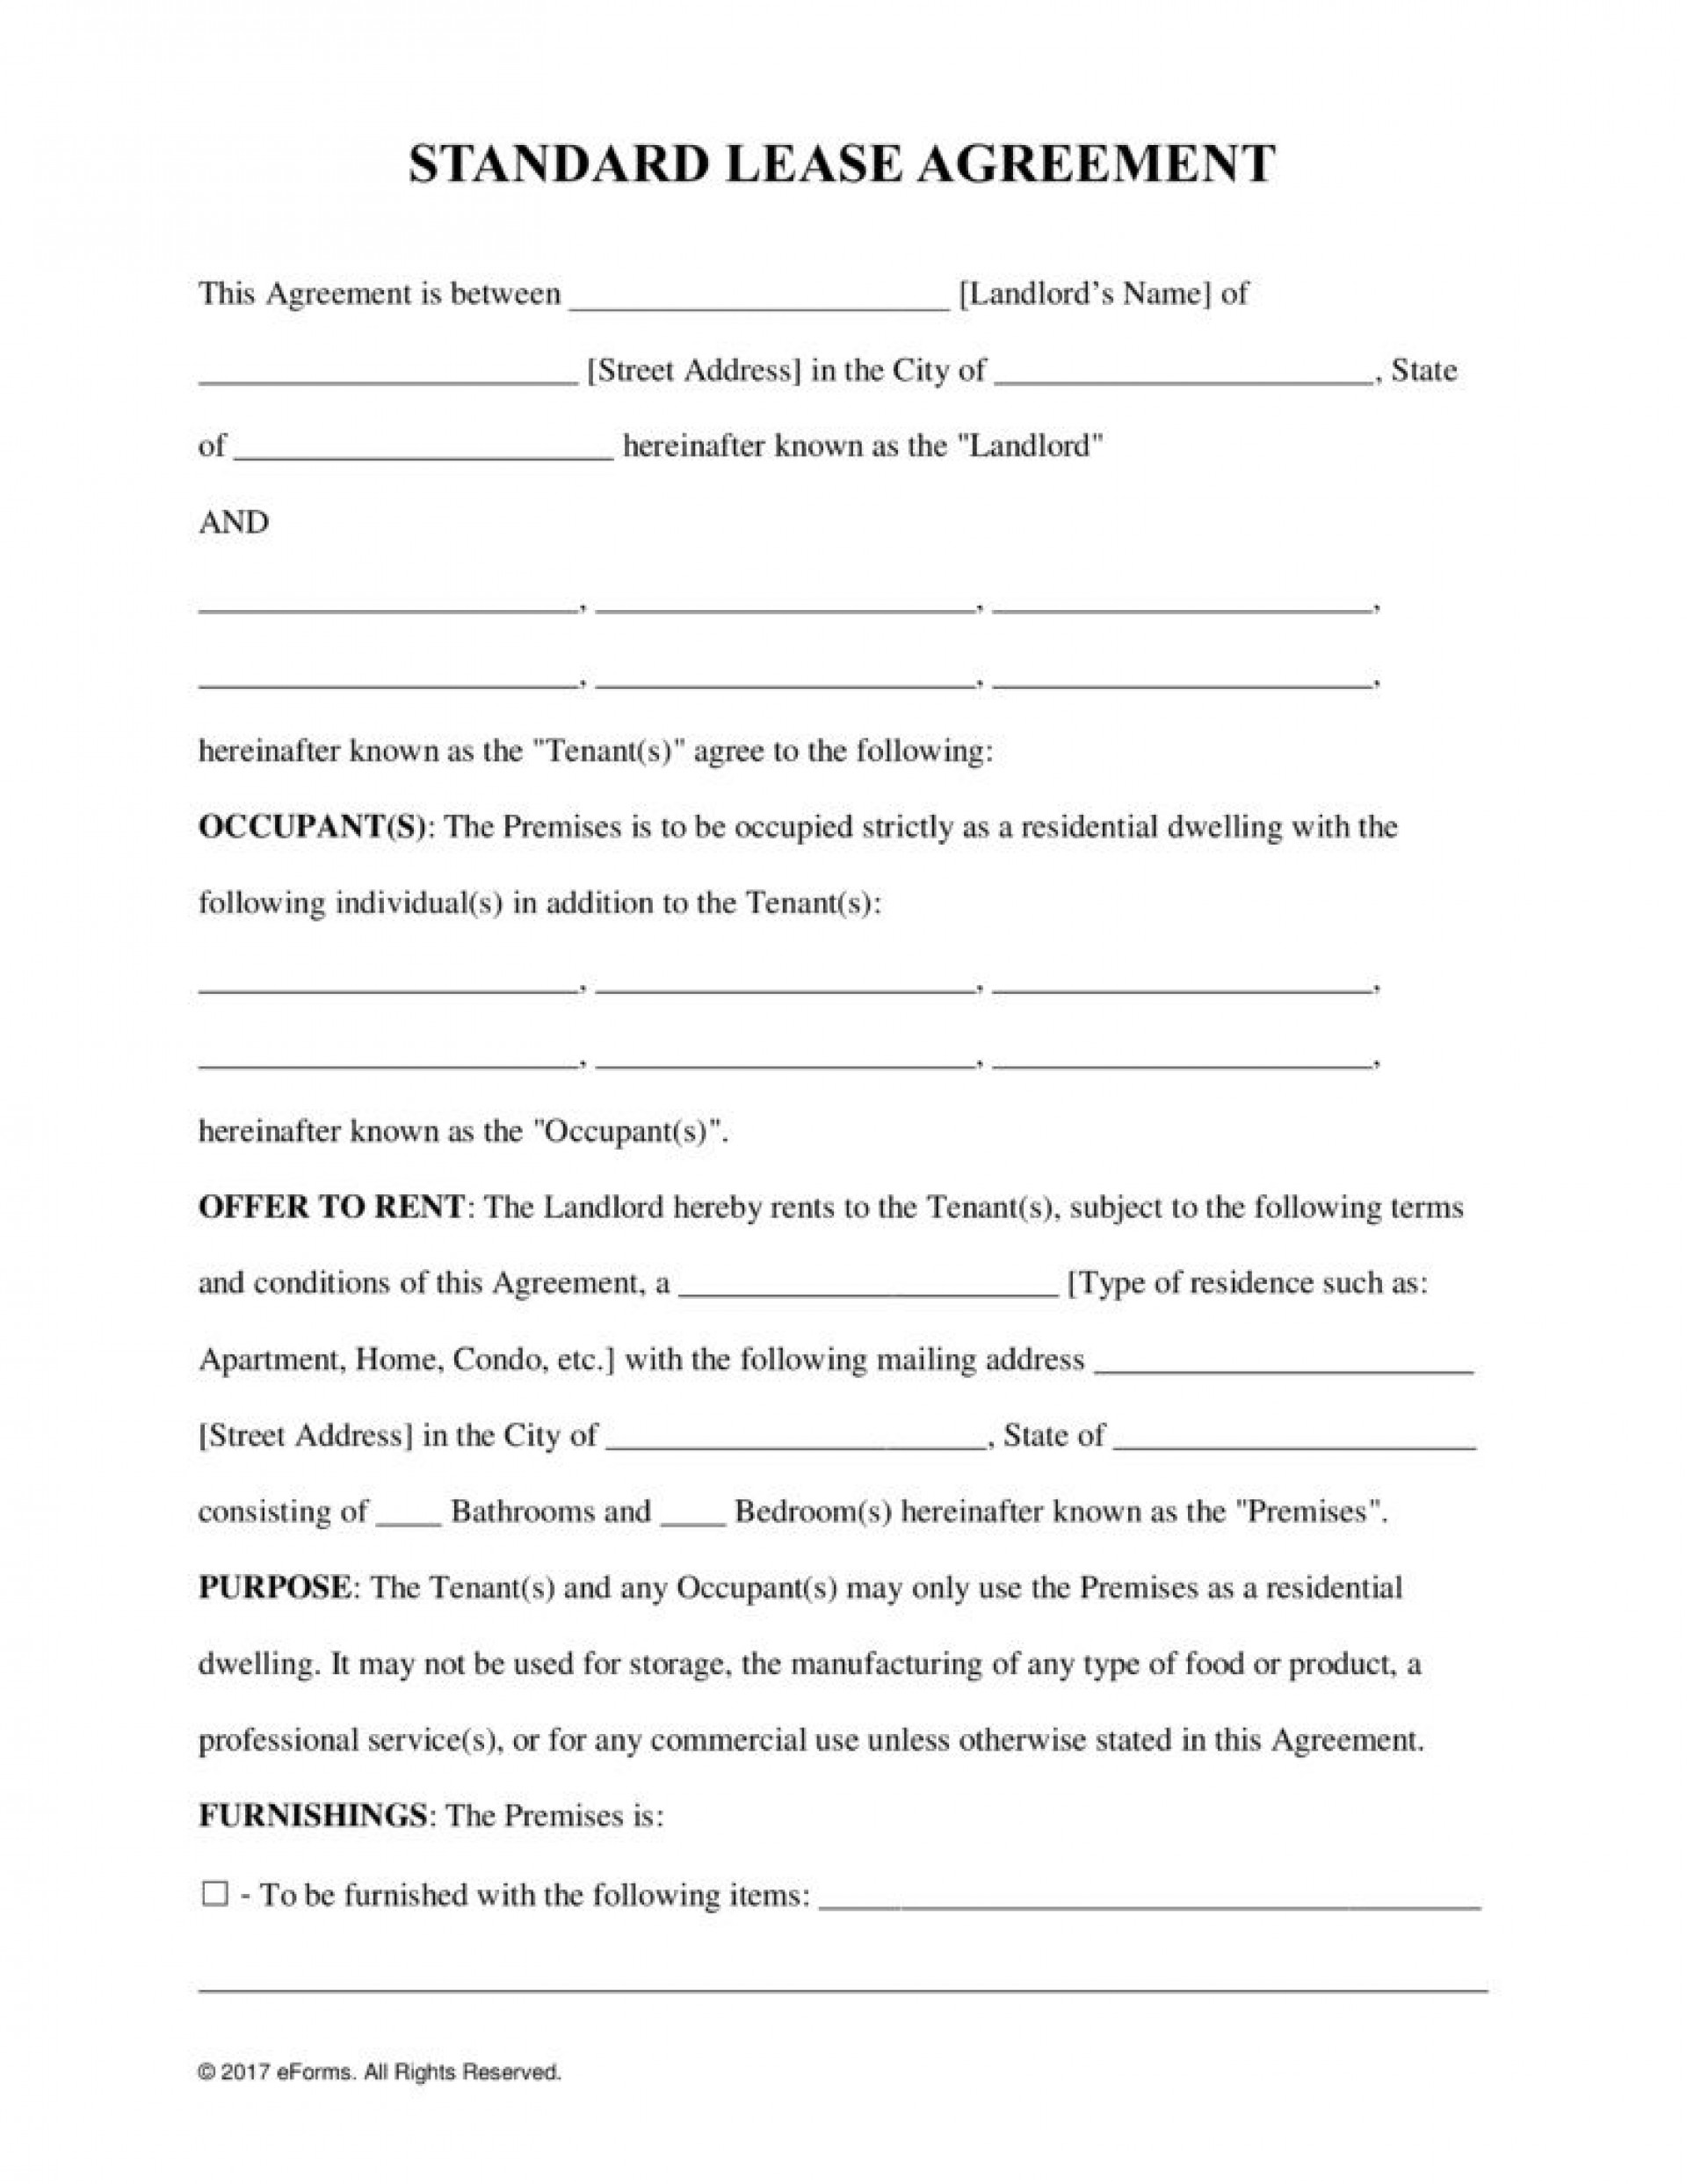 001 Singular Free Lease Agreement Template Word Photo  Doc Residential Commercial Uk1920